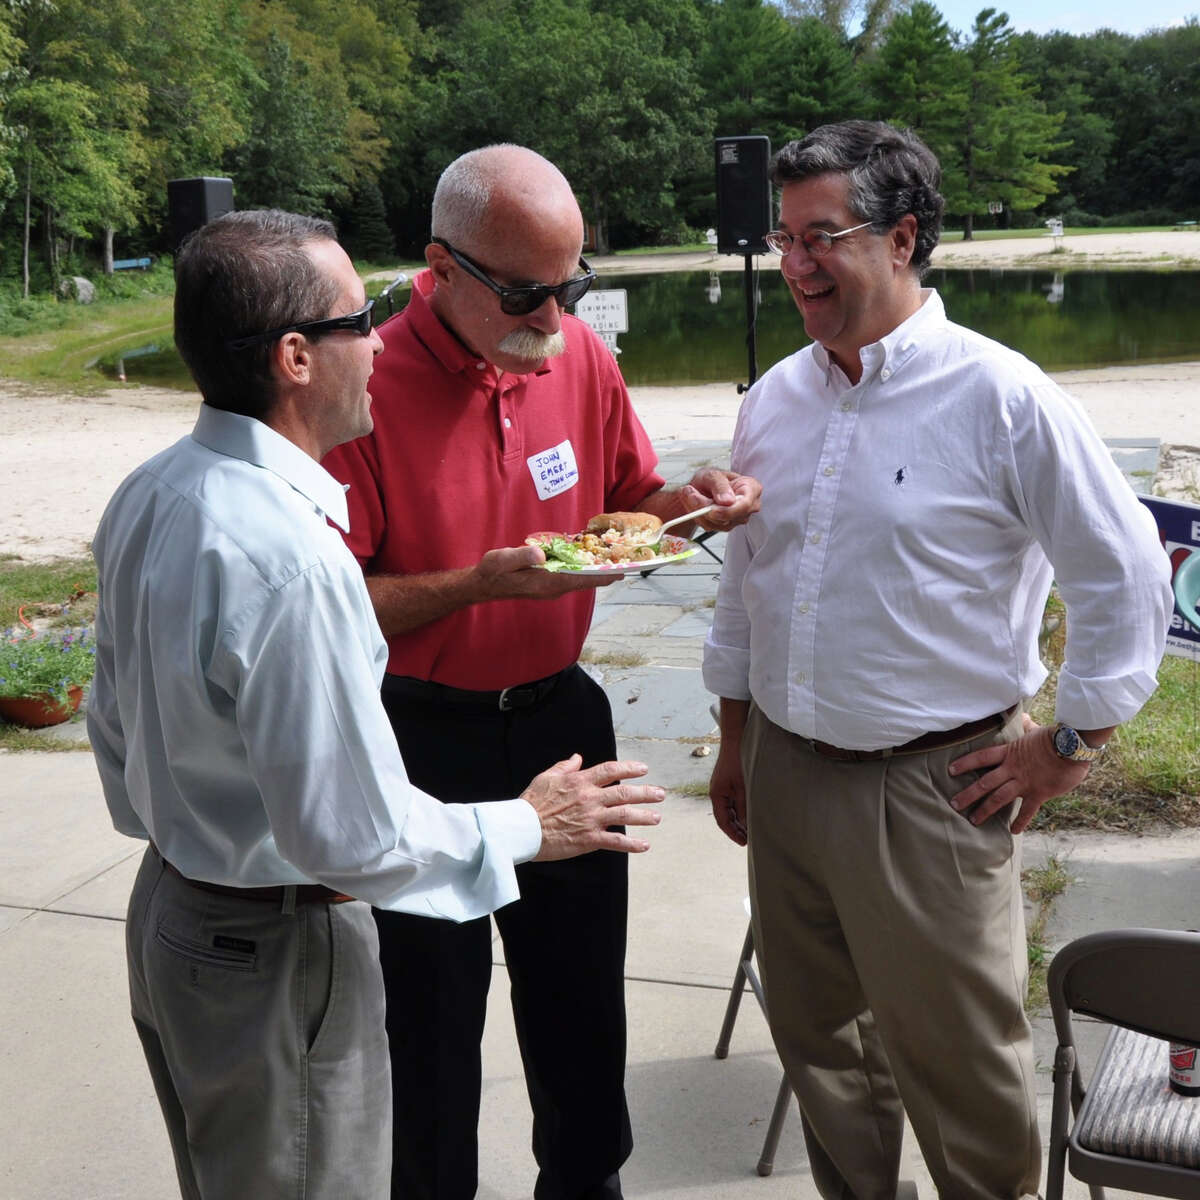 At the 2011 Democratic Town Committee barbecue, Town Council member John Emert, center, and First Selectman Rob Mallozzi, right, speak with a voter.